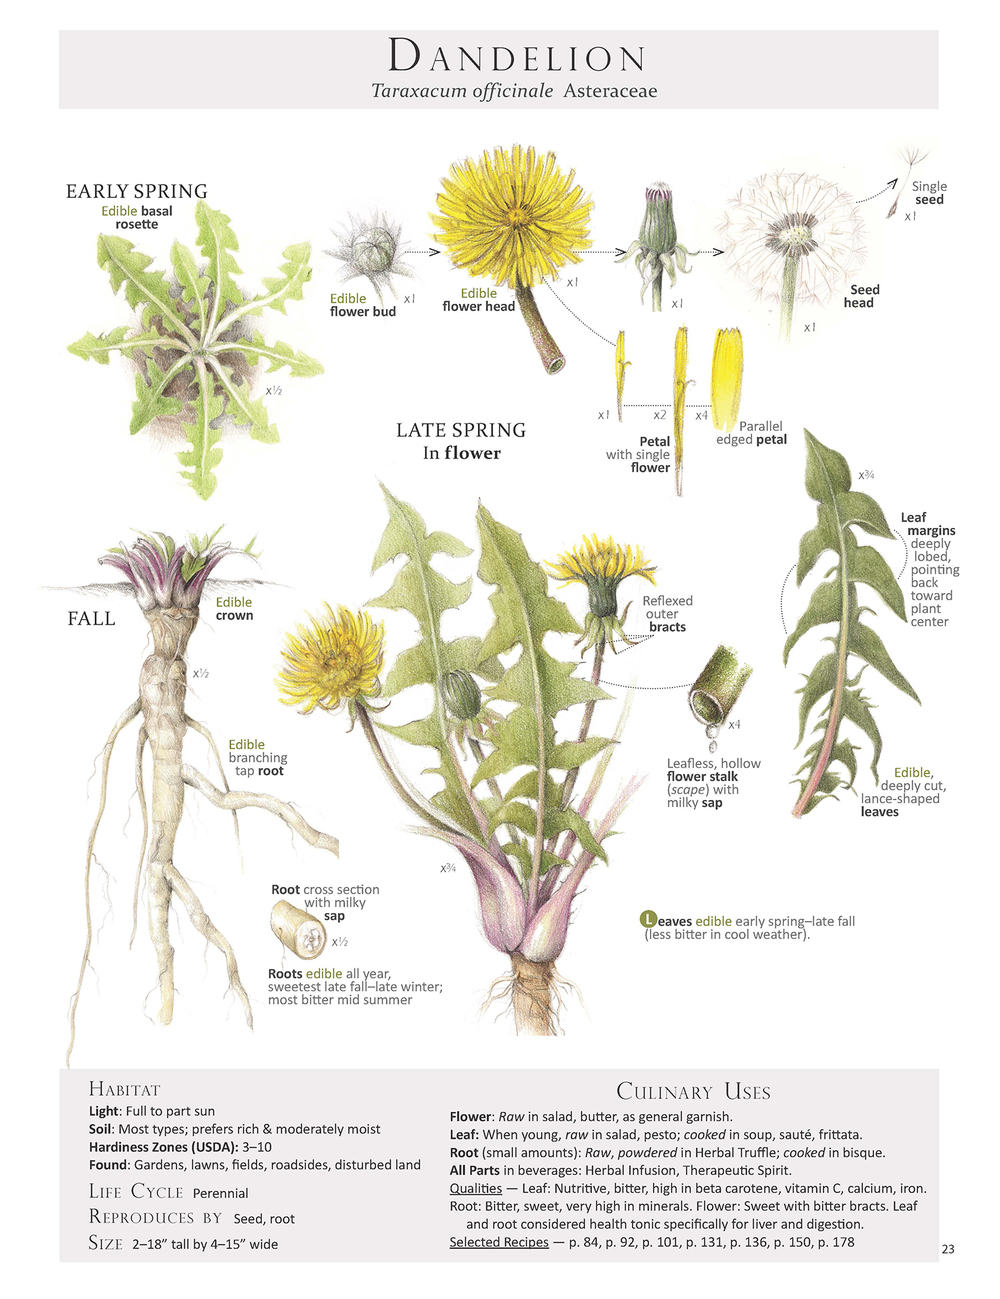 Wild Bergamot Drawing Dandelion: A Constant ...